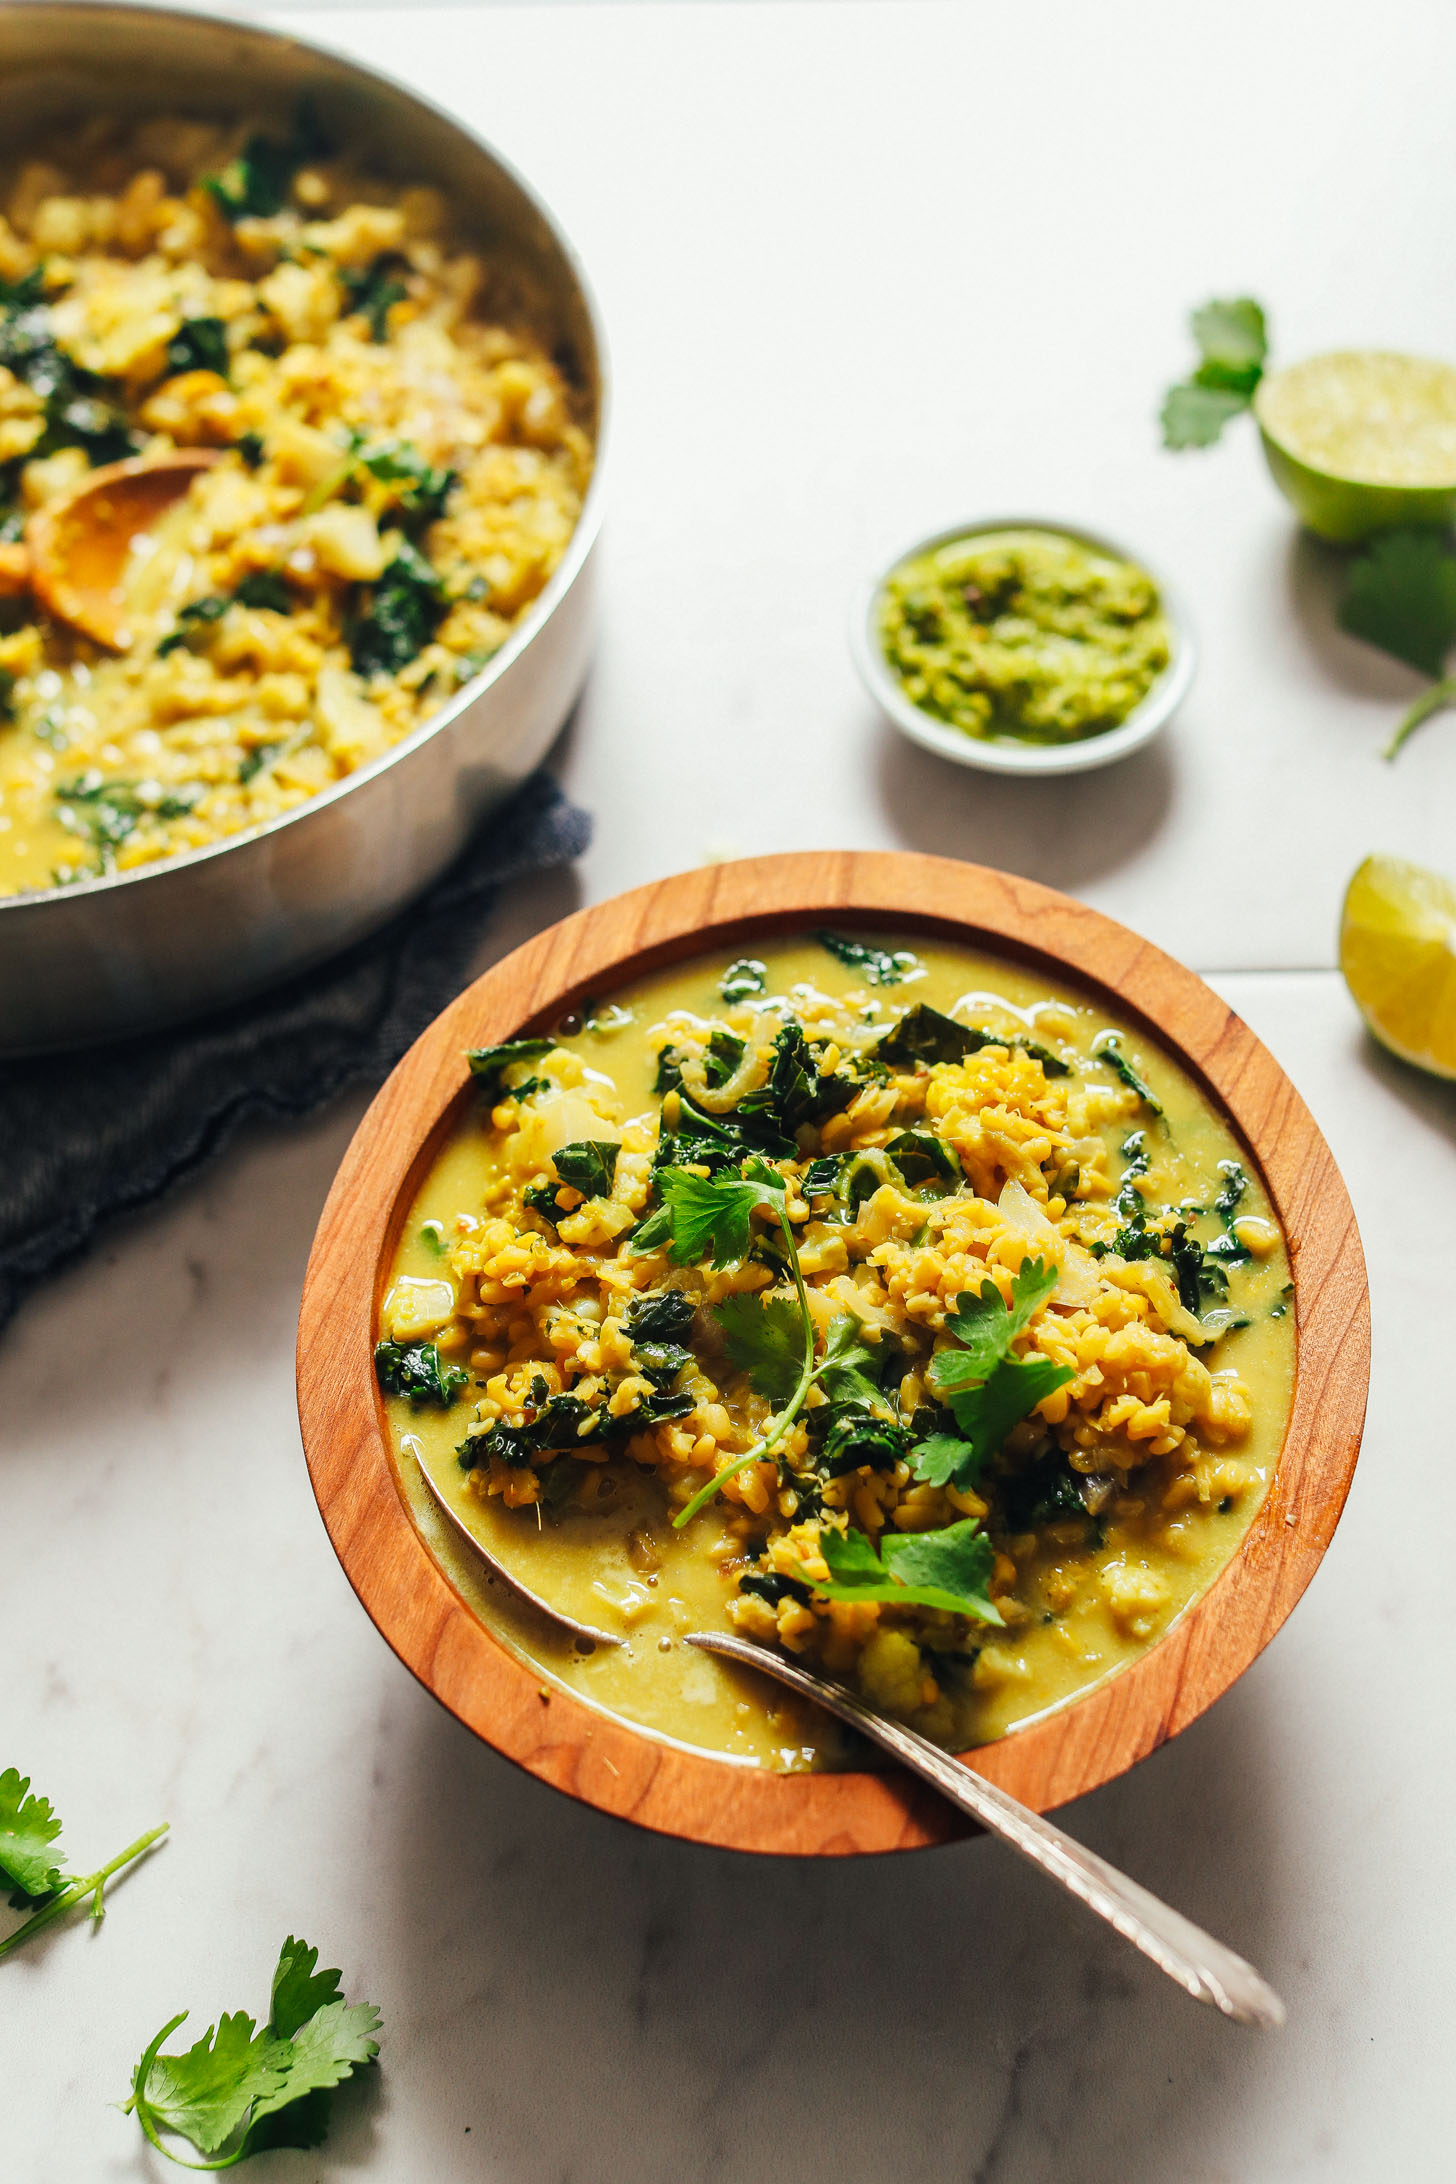 Image of green curry with kale and lentils in a wooden bowl with metal spoon